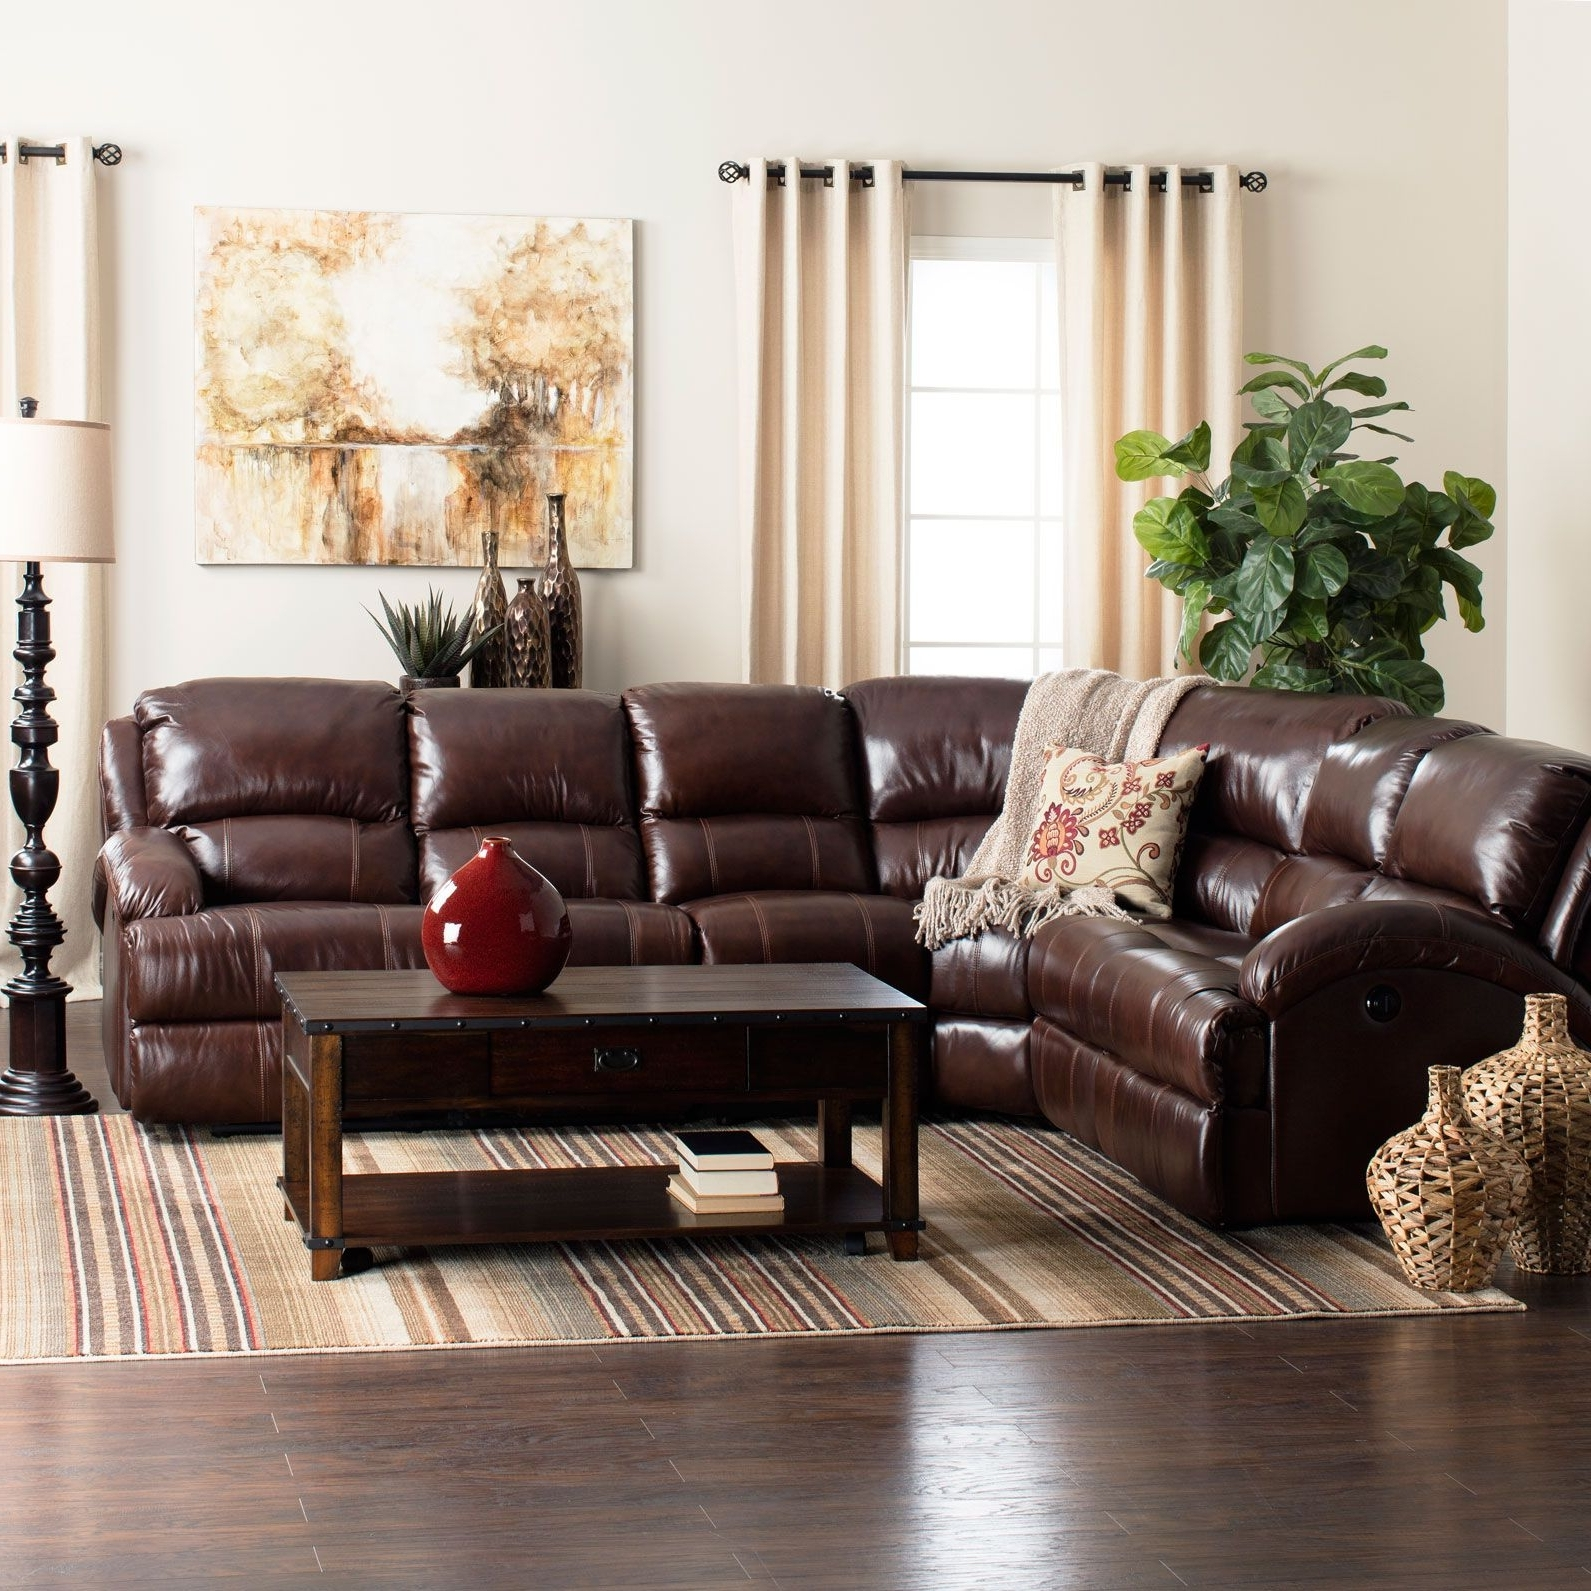 Favorite With Its Sophisticated Style The Soho Sectional Will Add Style To Intended For Jerome's Sectional Sofas (View 5 of 20)